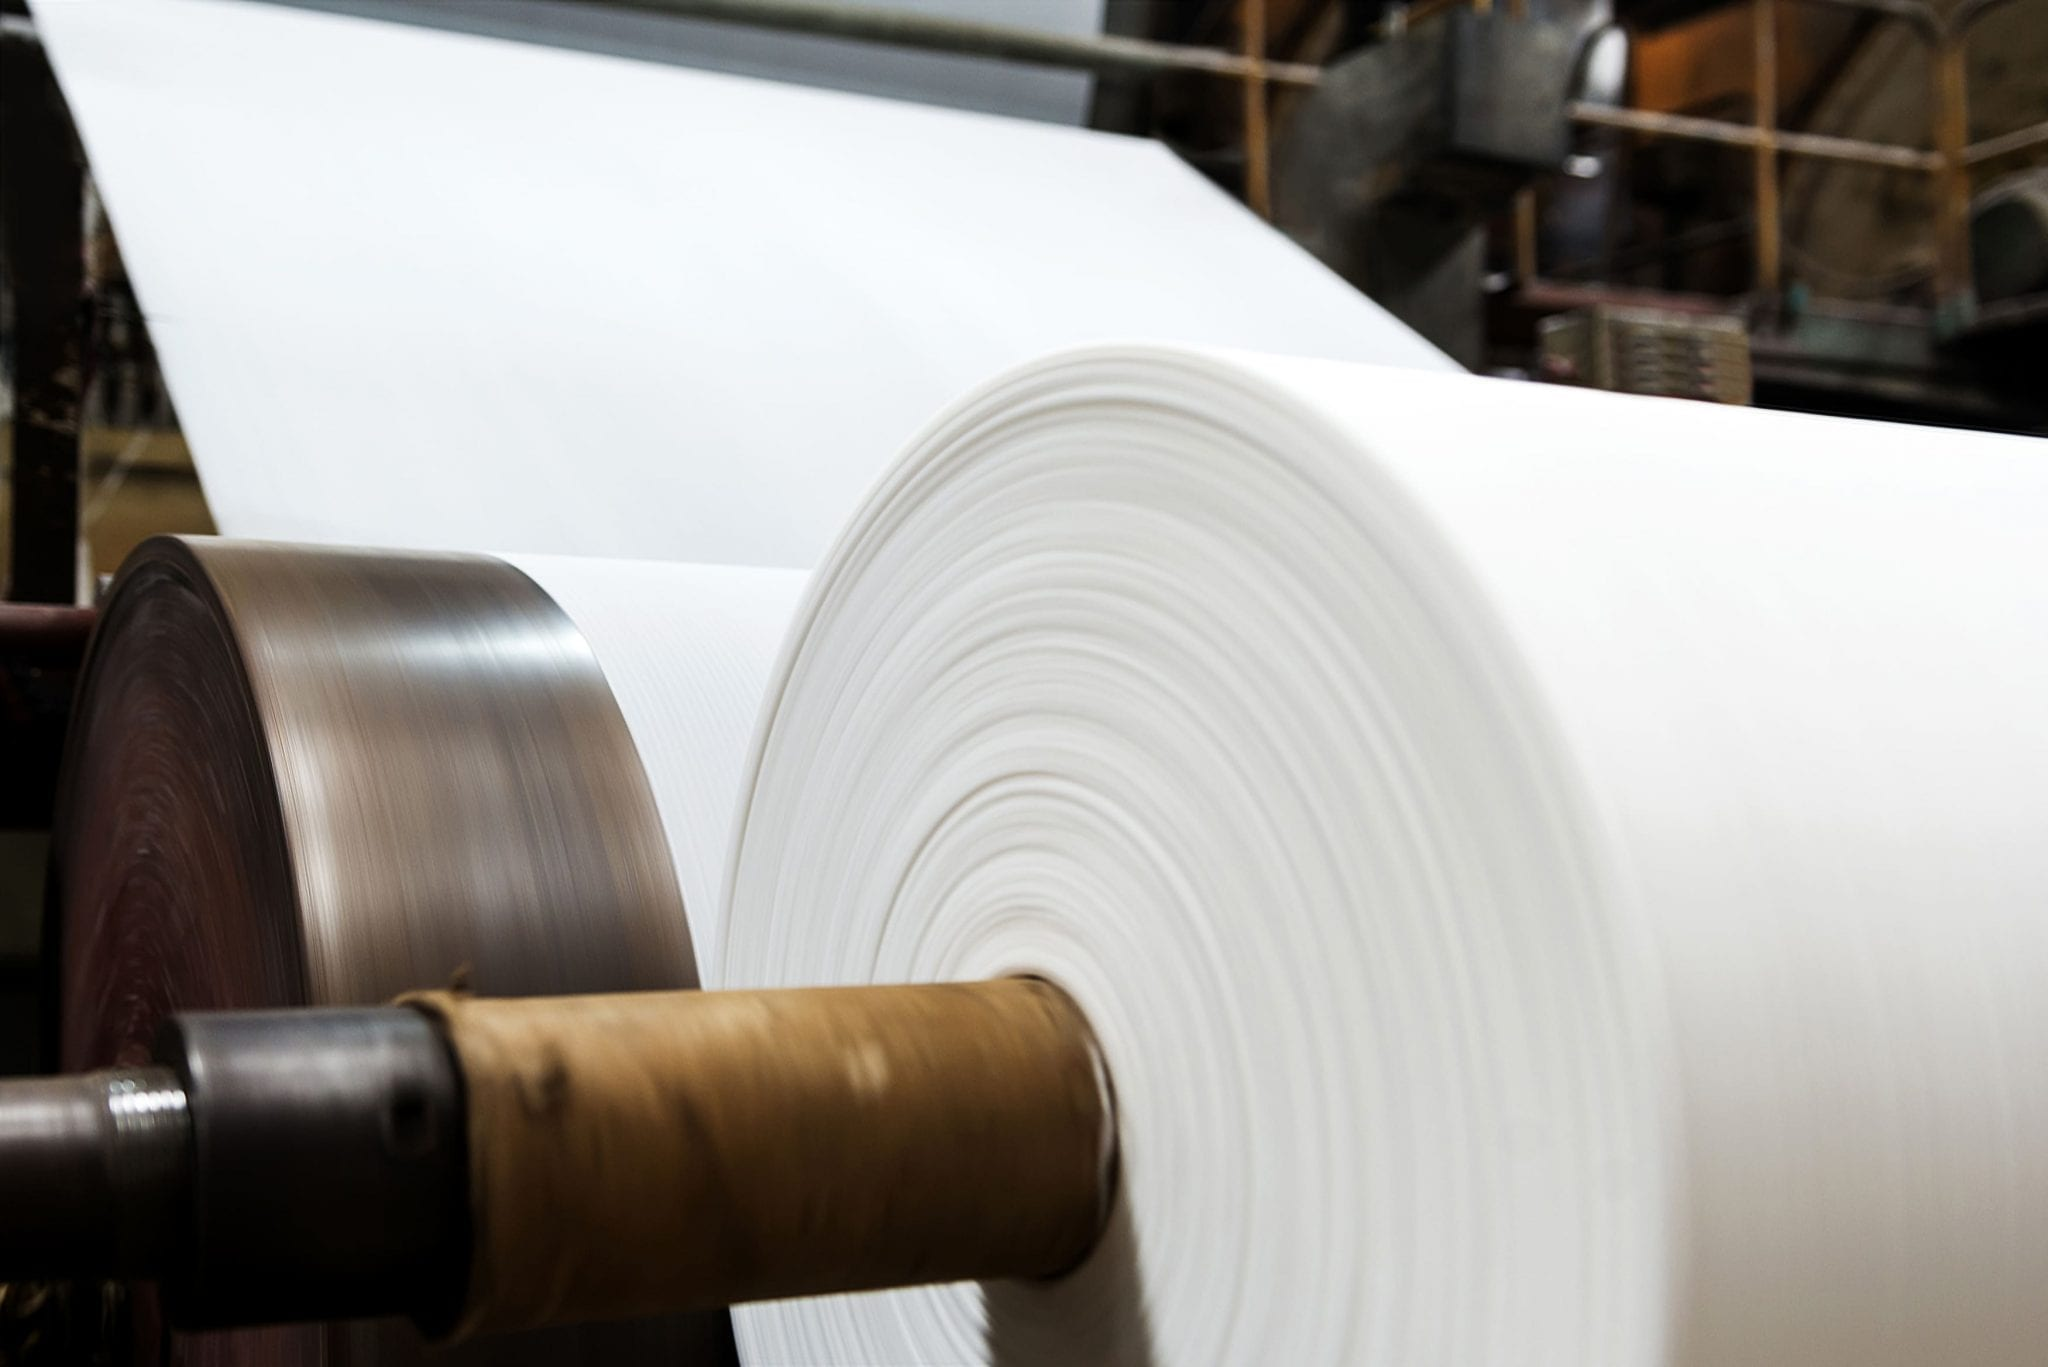 SNF serves many markets and  Pulp & Paper is just one